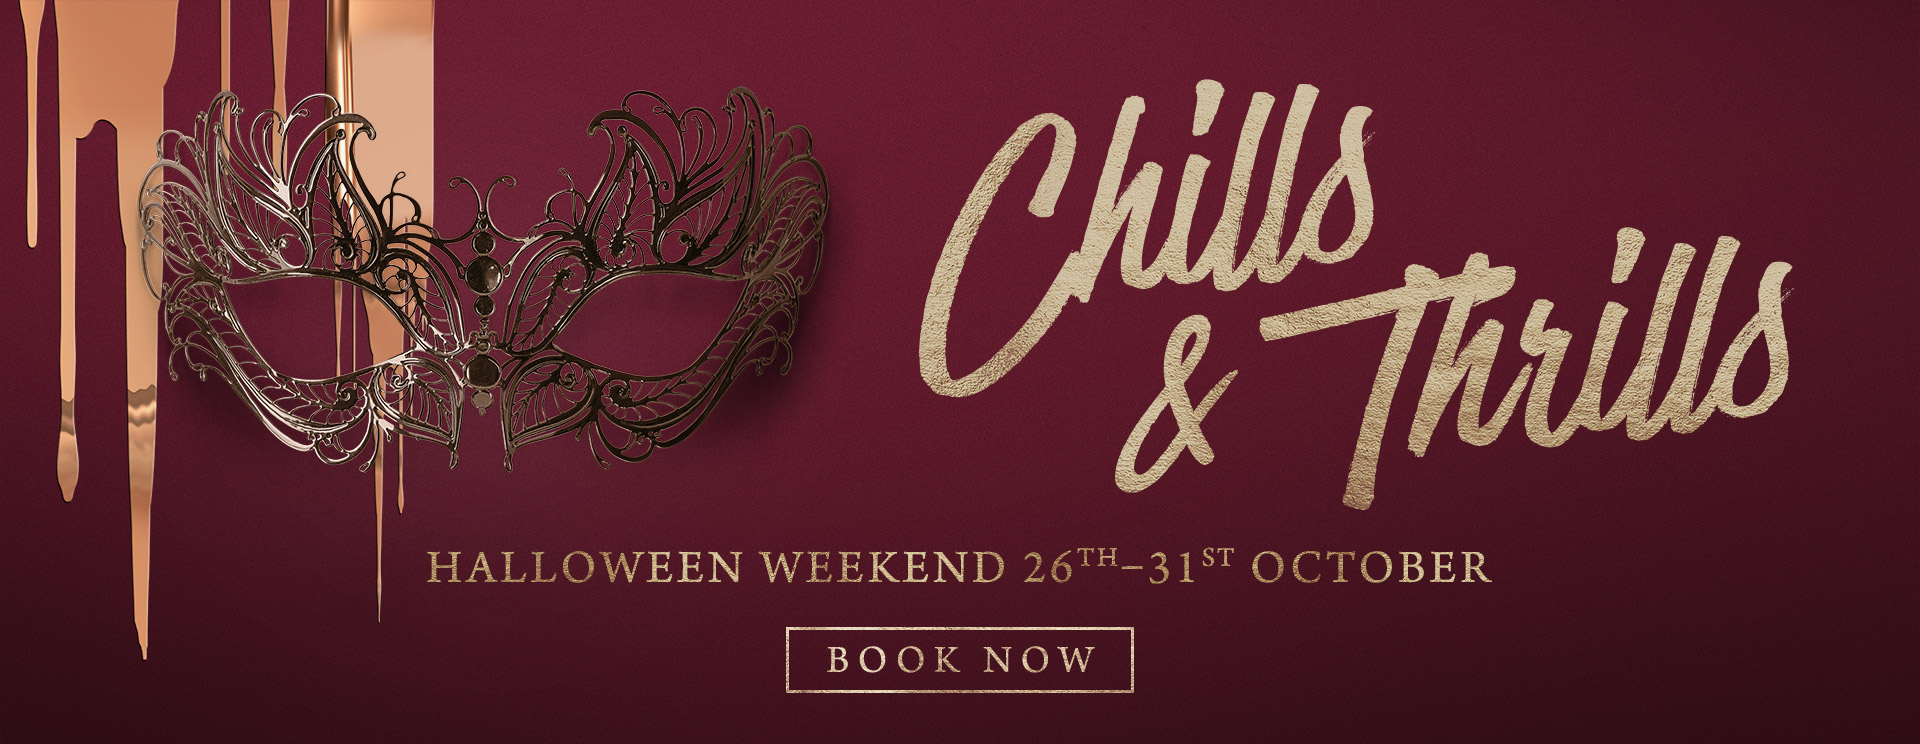 Chills & Thrills this Halloween at The Castle